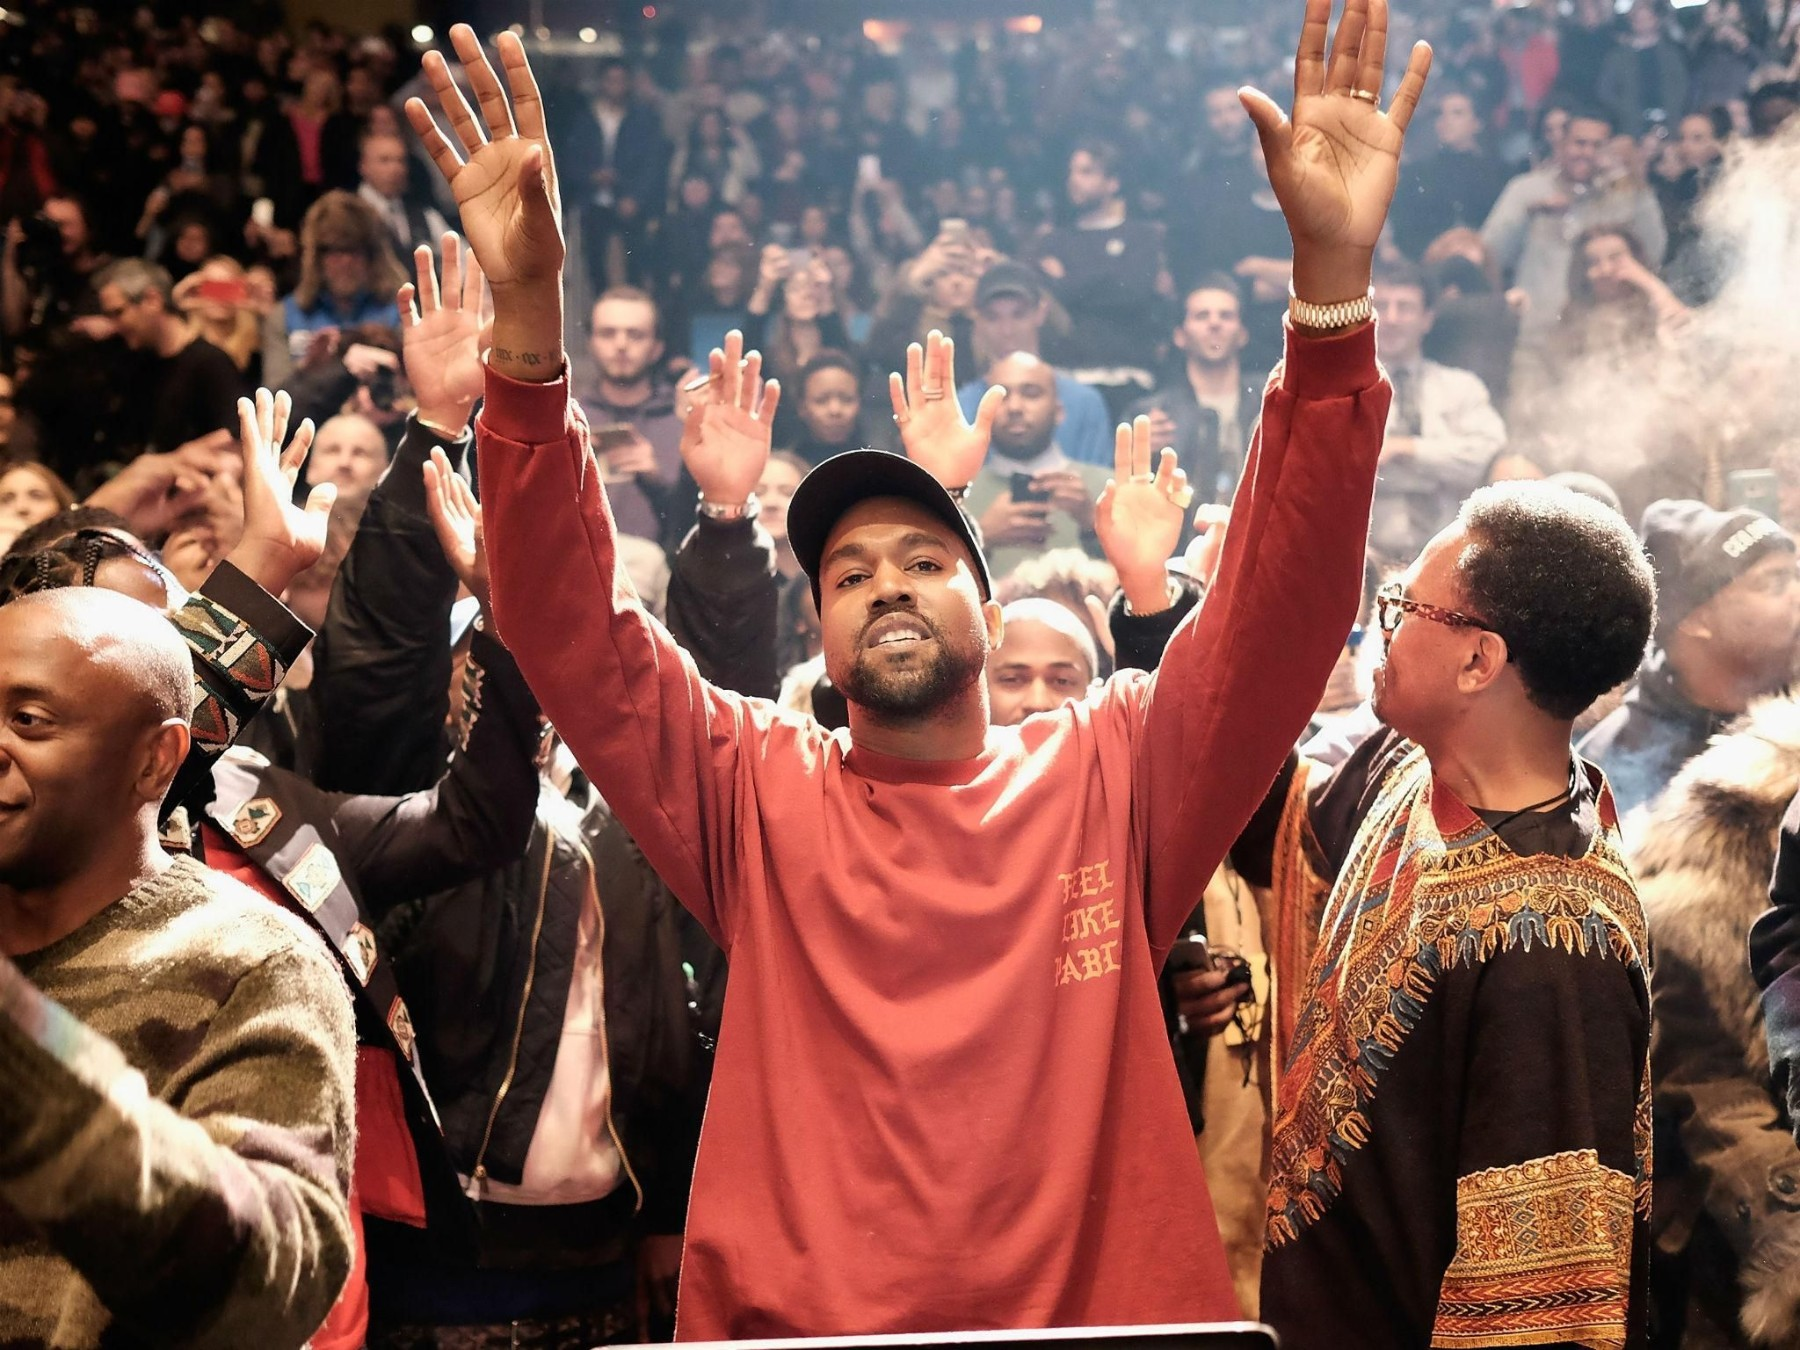 Kanye West nuovo singolo Wash Us In The Blood